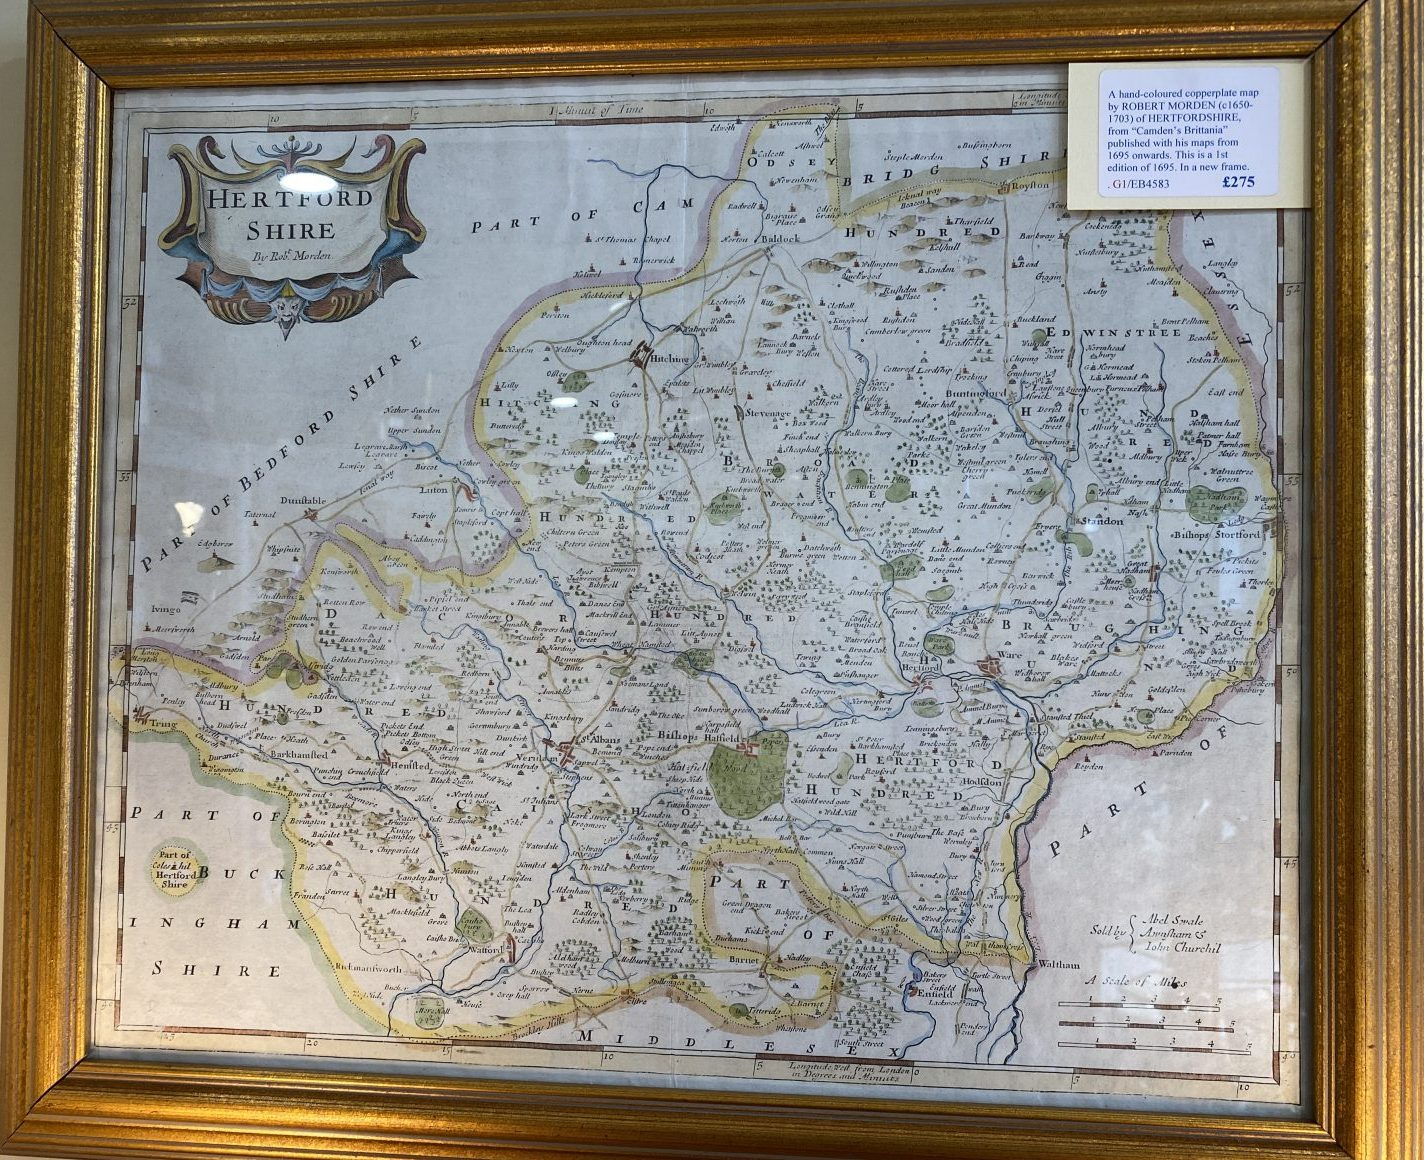 G1 - A Hand-coloured copperplate map of HERTFORDSHIRE by Robert Morden (1650-1703) from Camdens Britannia of 1695, in a new frame.  £275